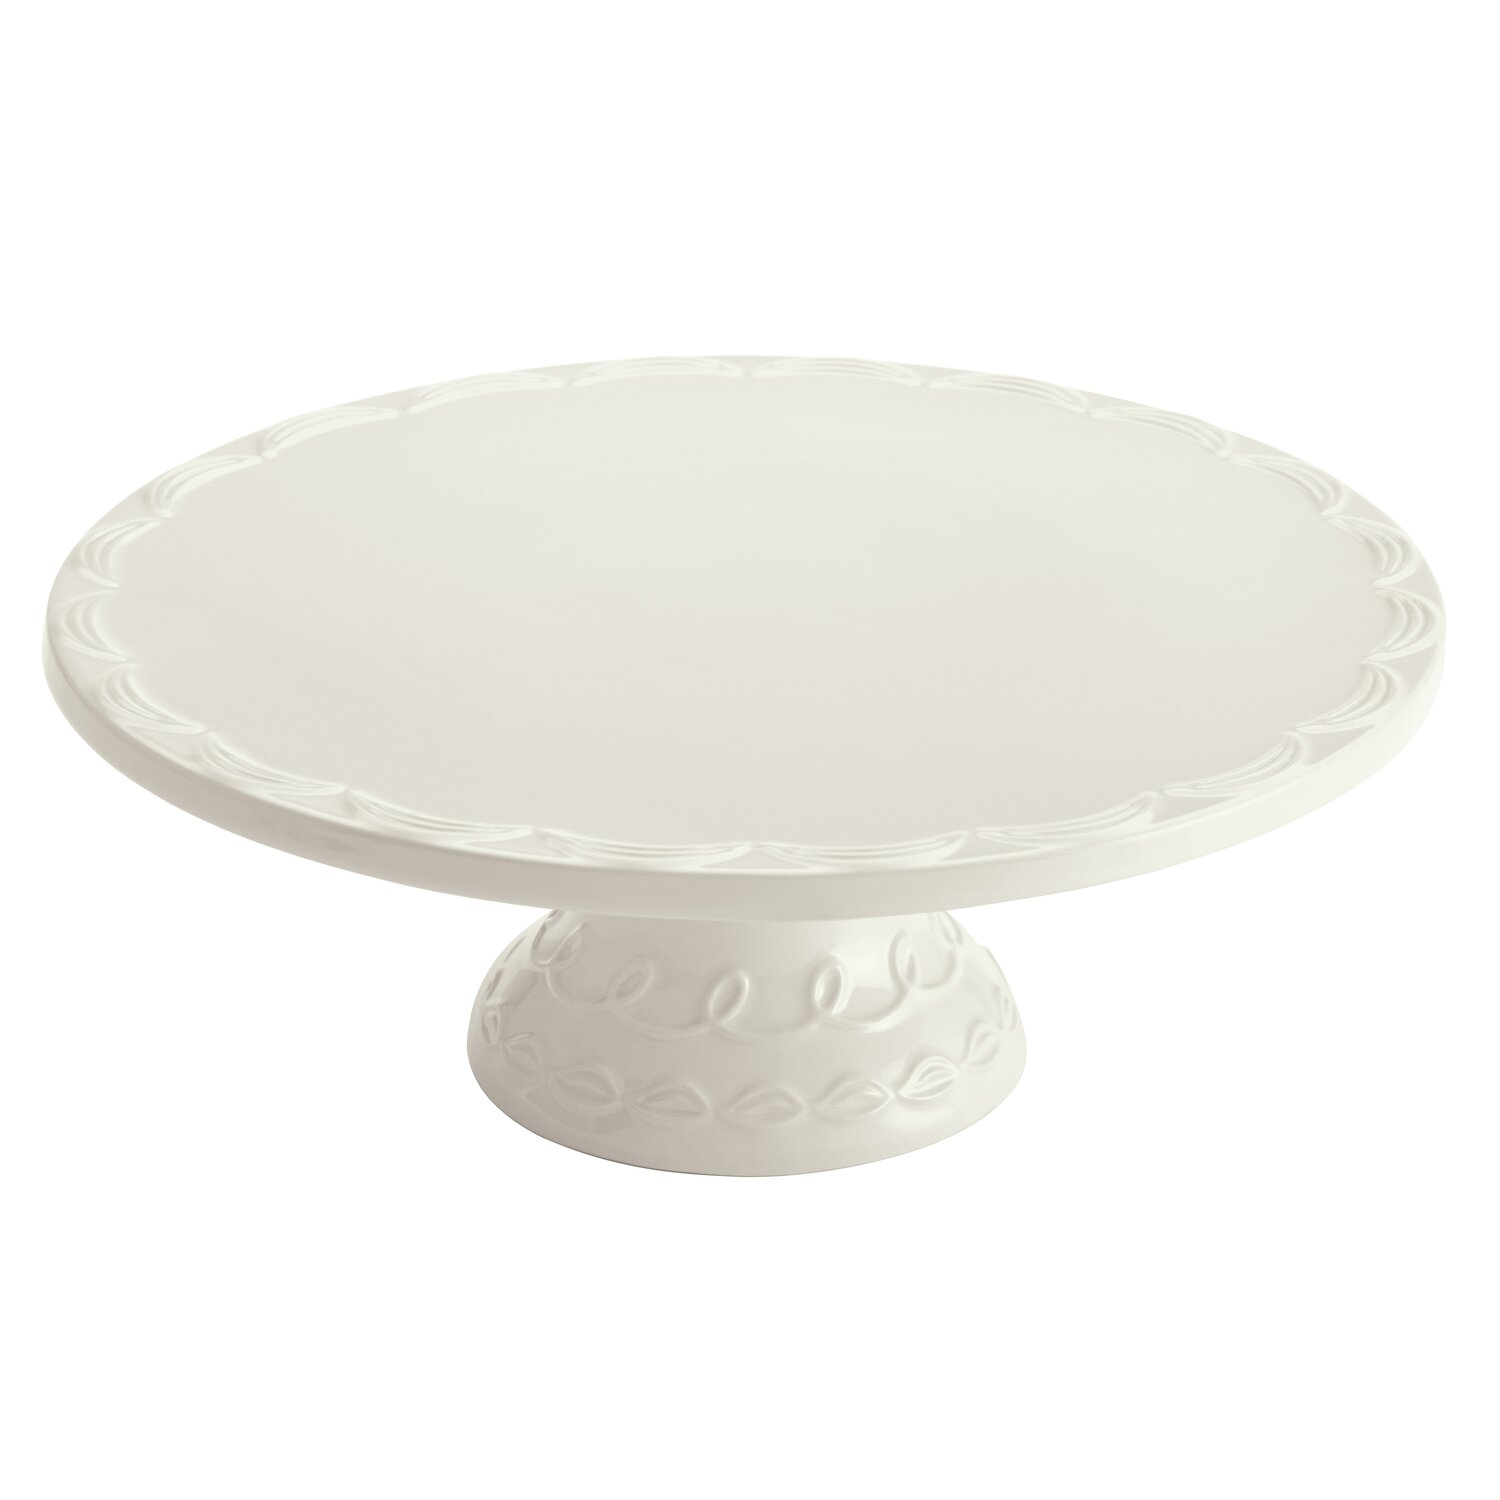 Sheet Cake Stand Cake Stand